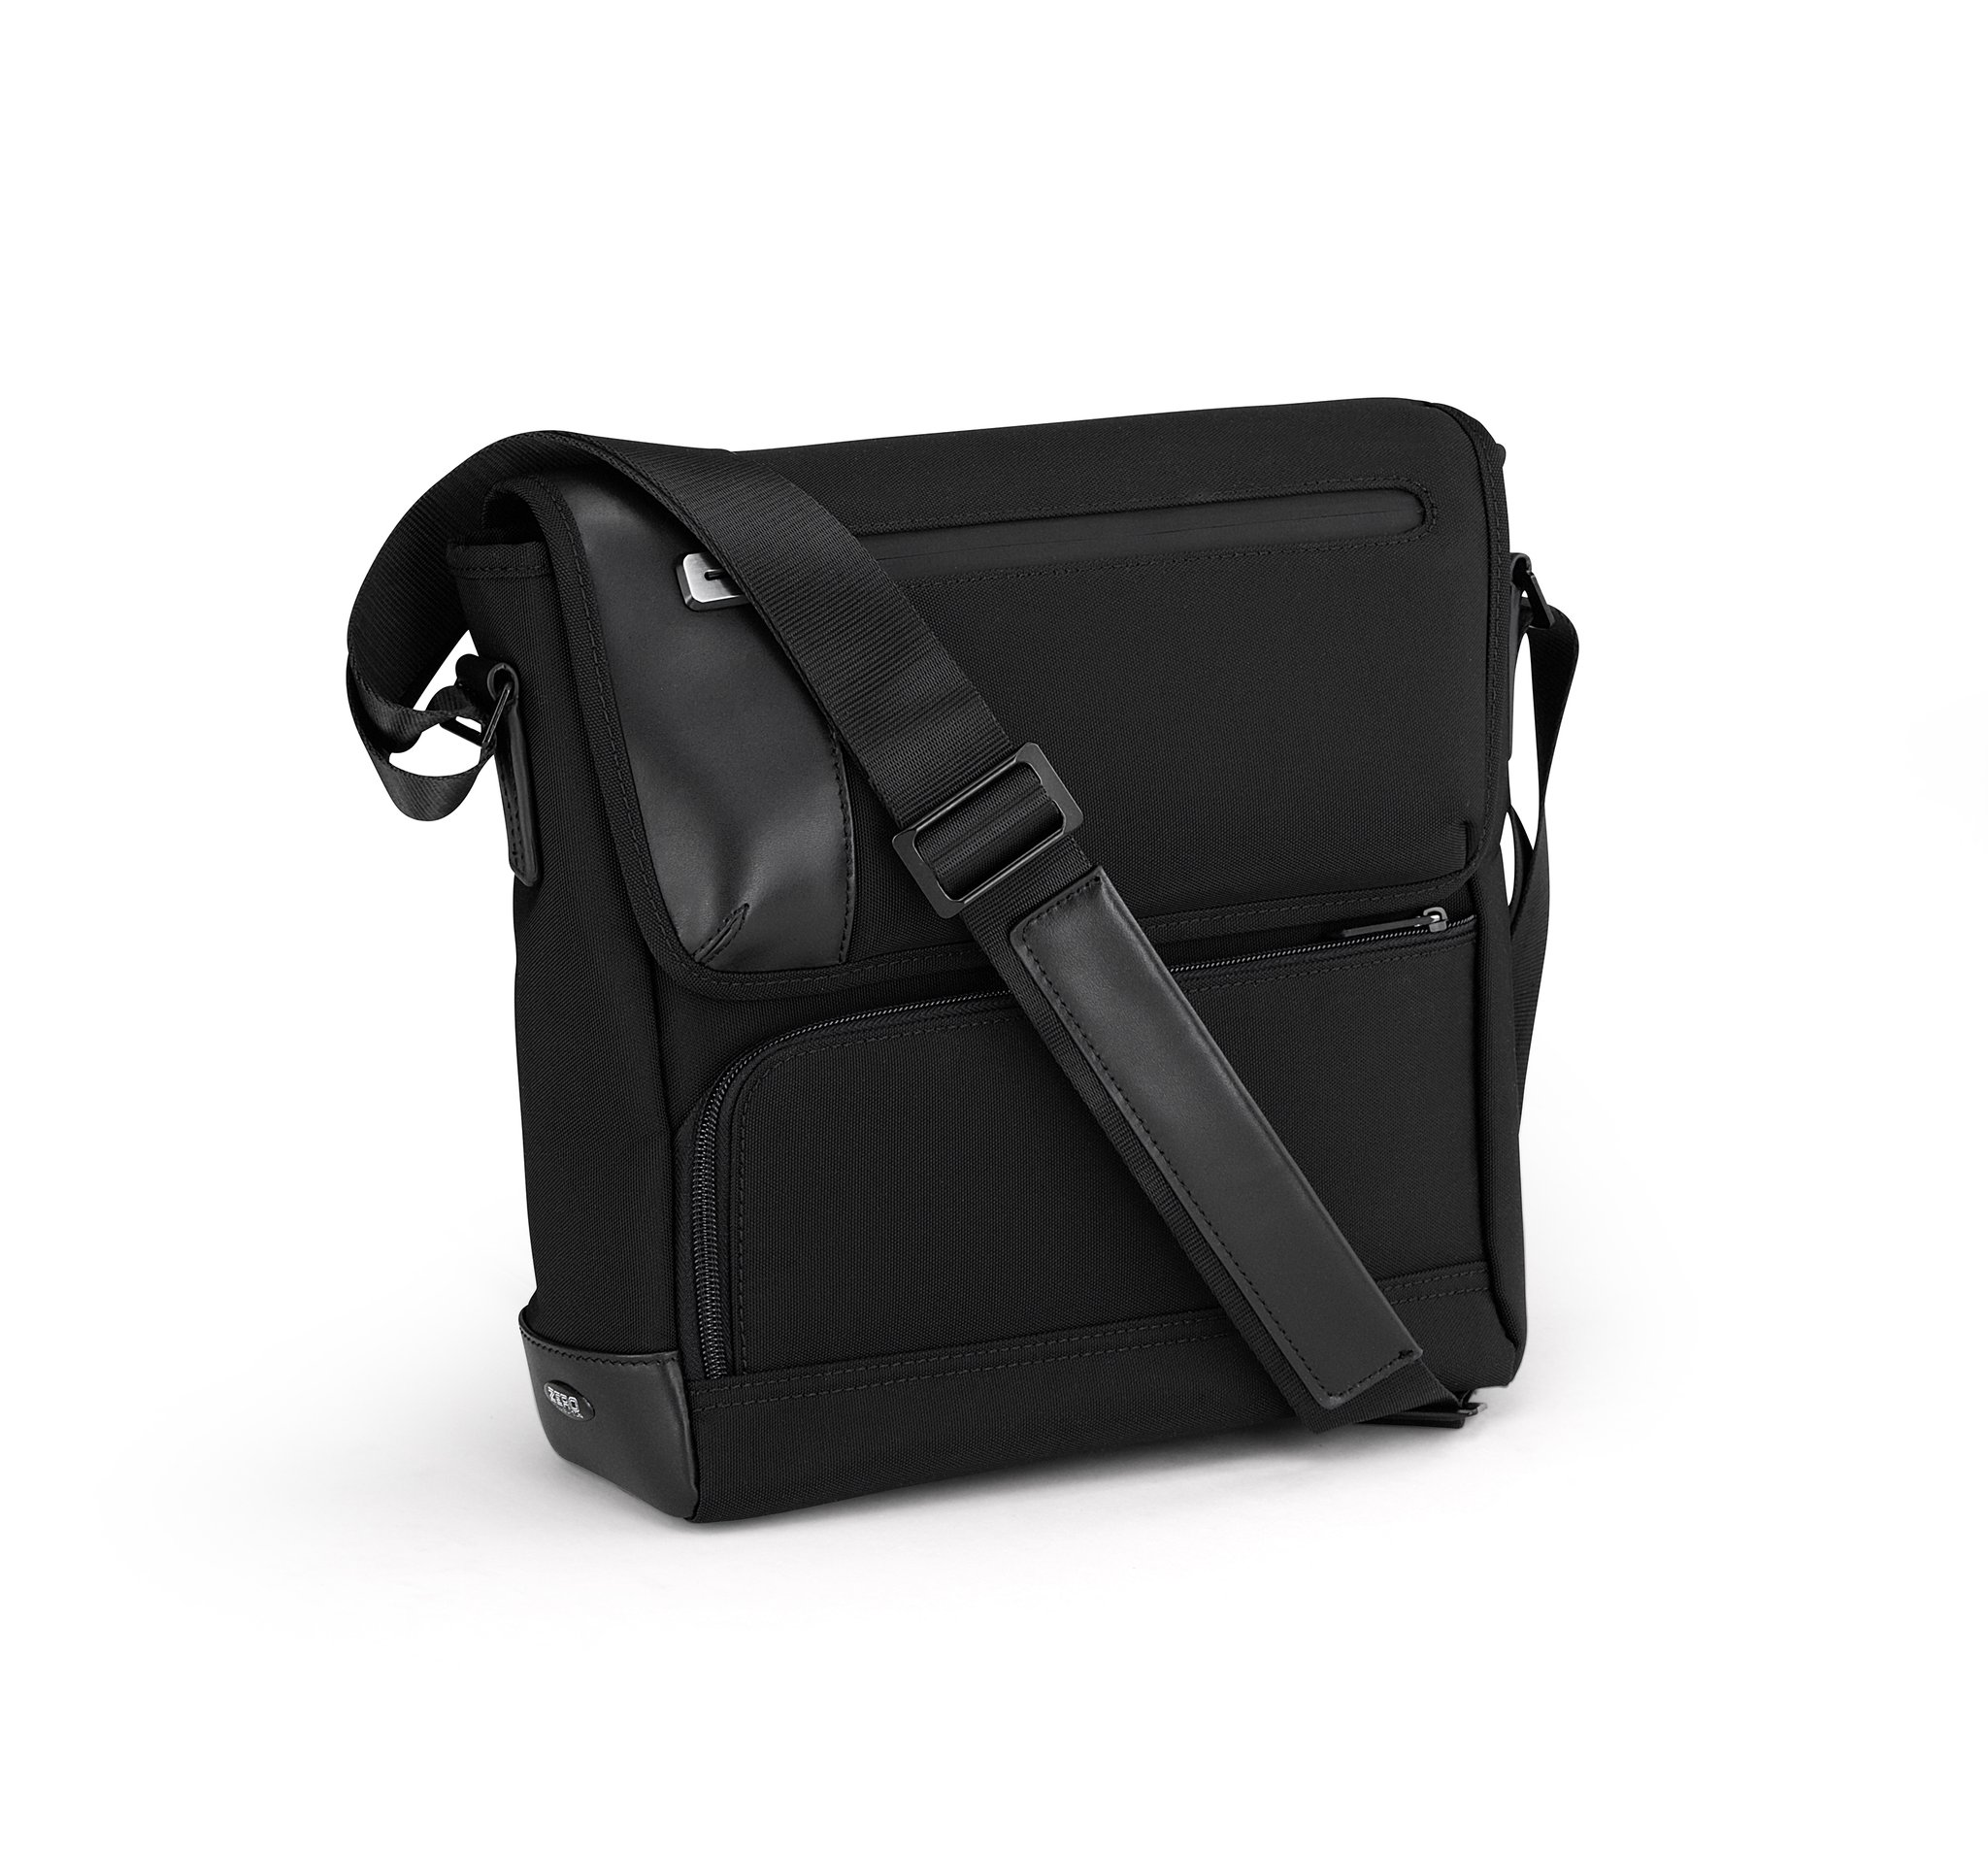 PRF 3.0 - 2-Wheeled Business Case by Zero Halliburton (Color: Black)